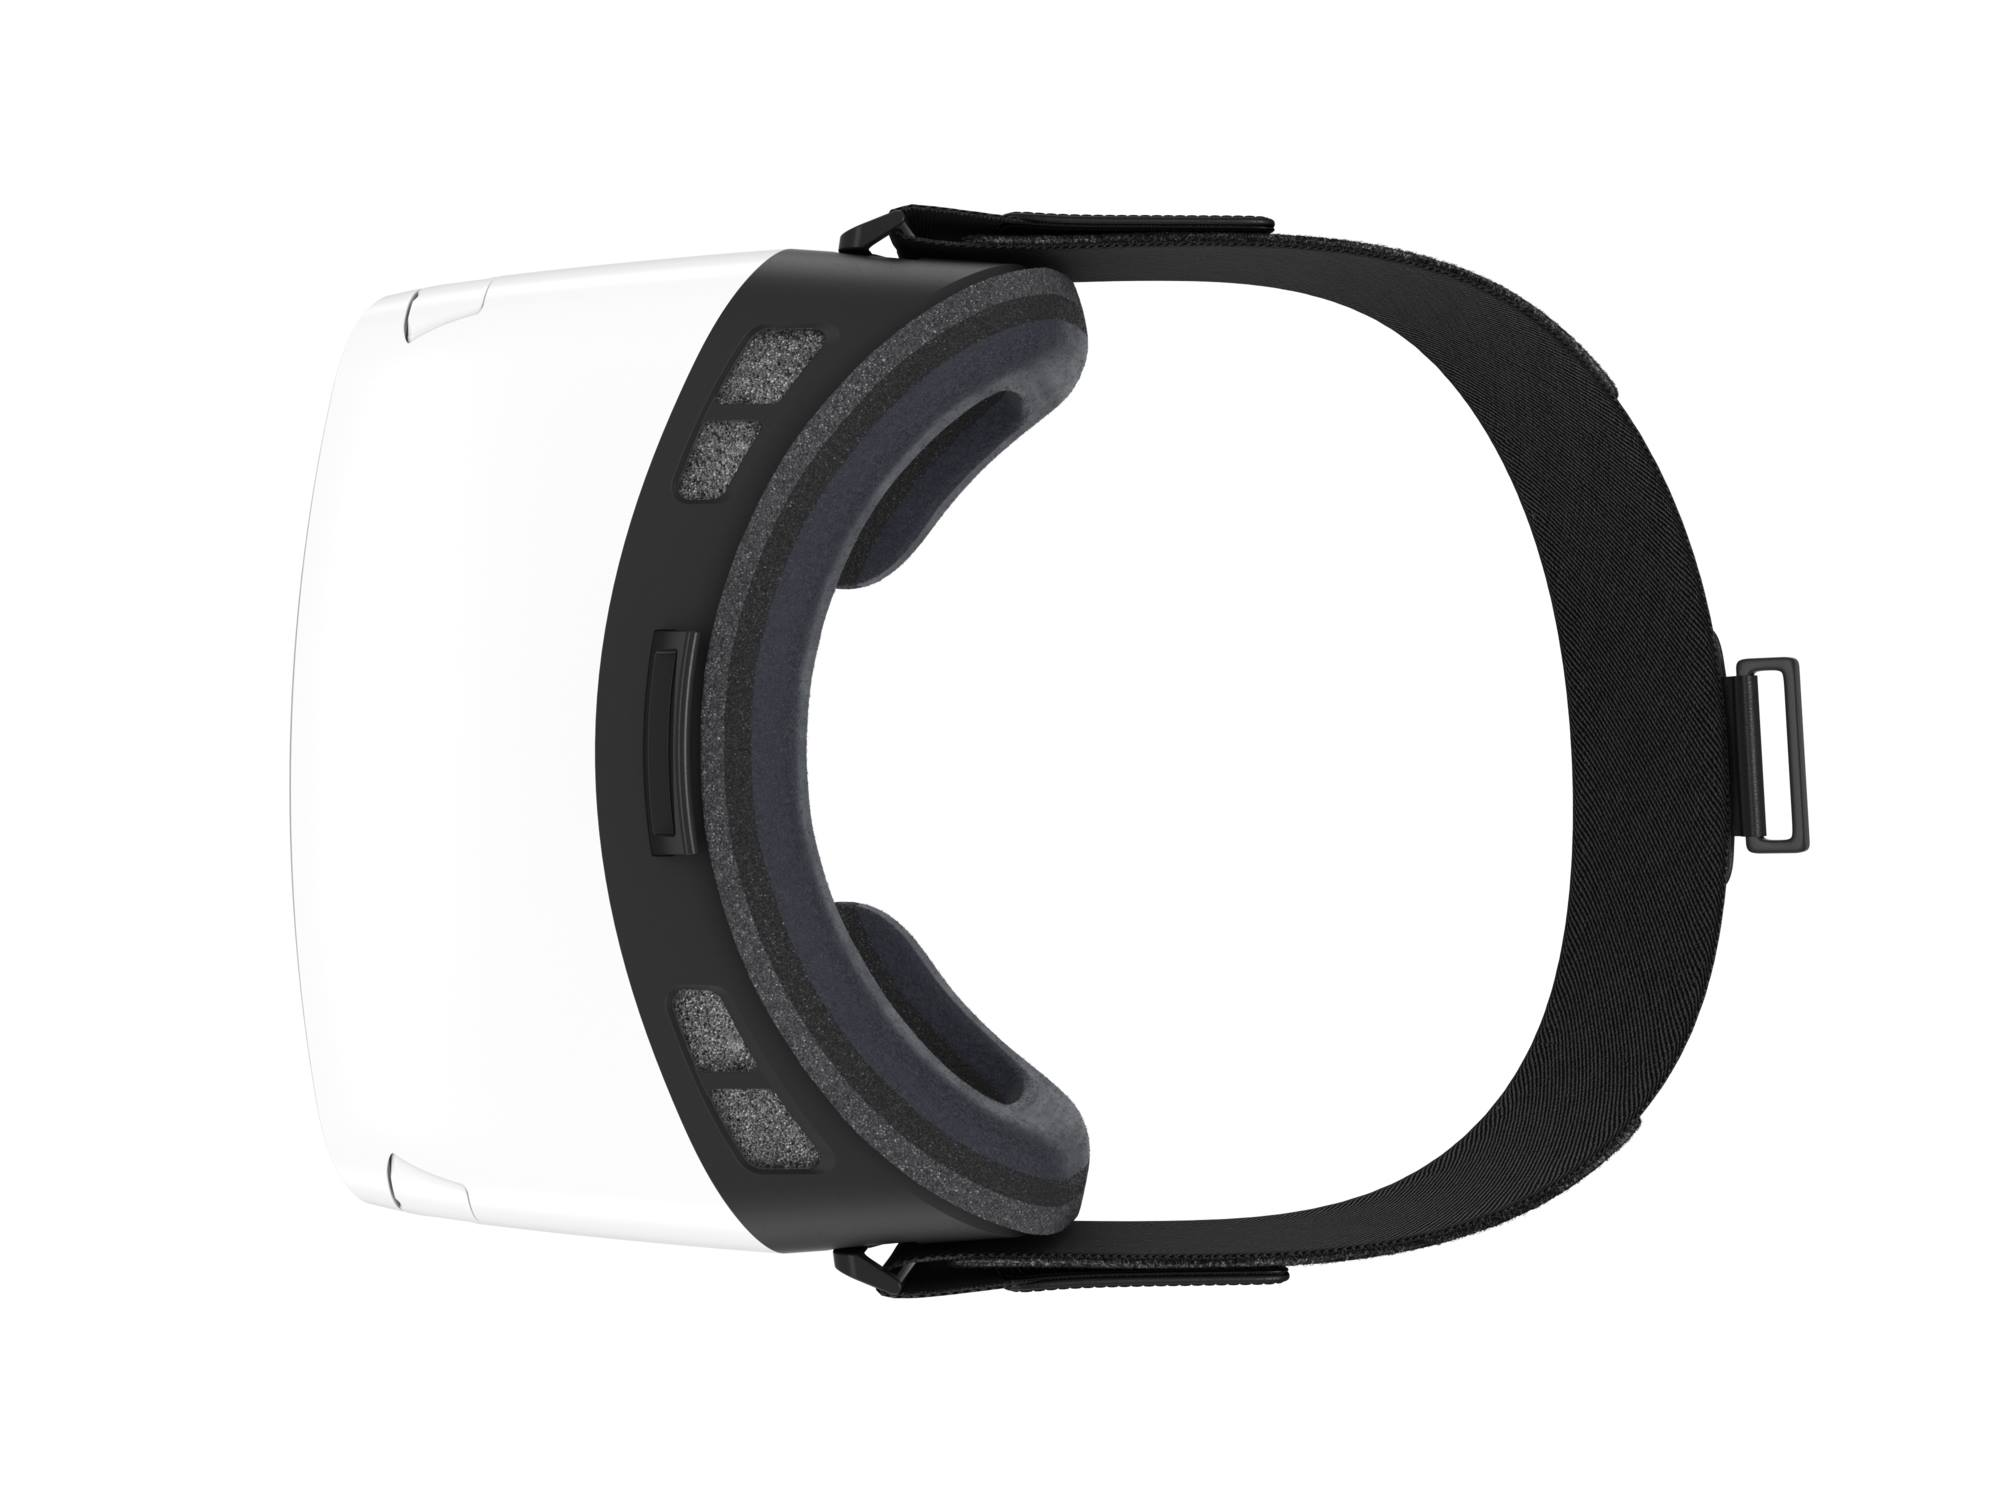 Carl Zeiss VR One Plus 1 (2)